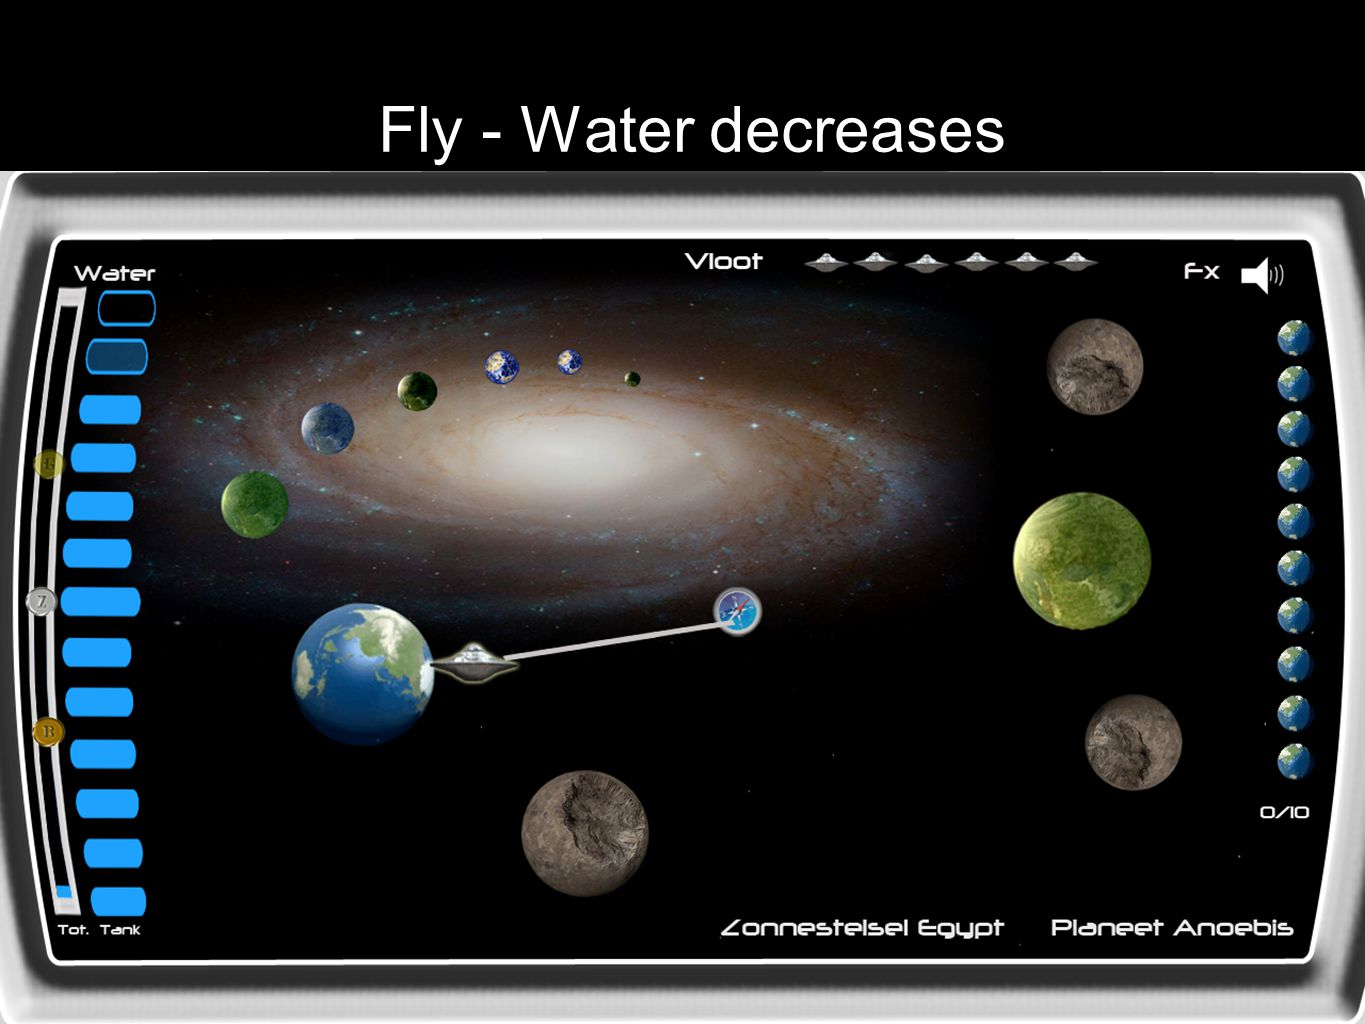 Fly - Water decreases